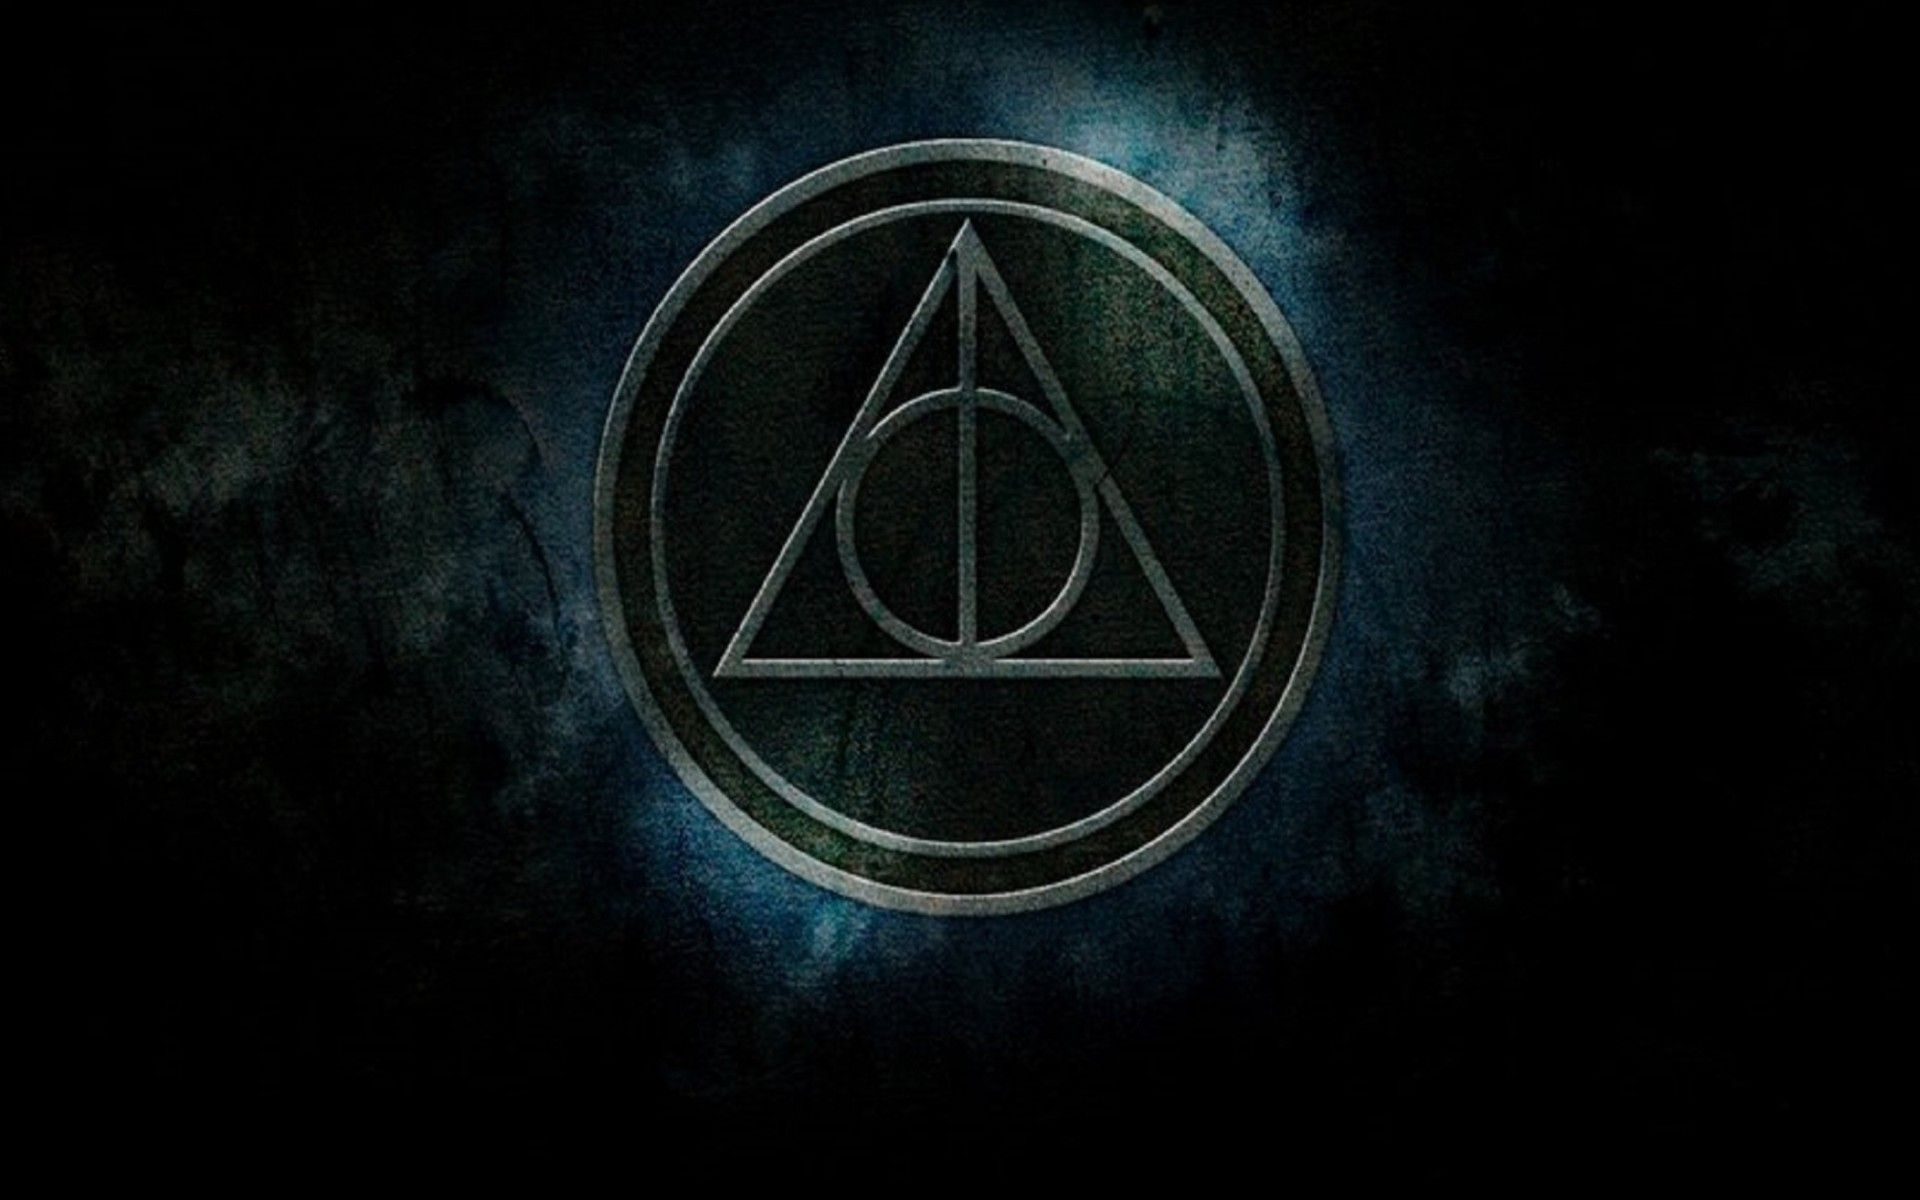 Always Harry Potter Hd Wallpapers On Wallpaperdog